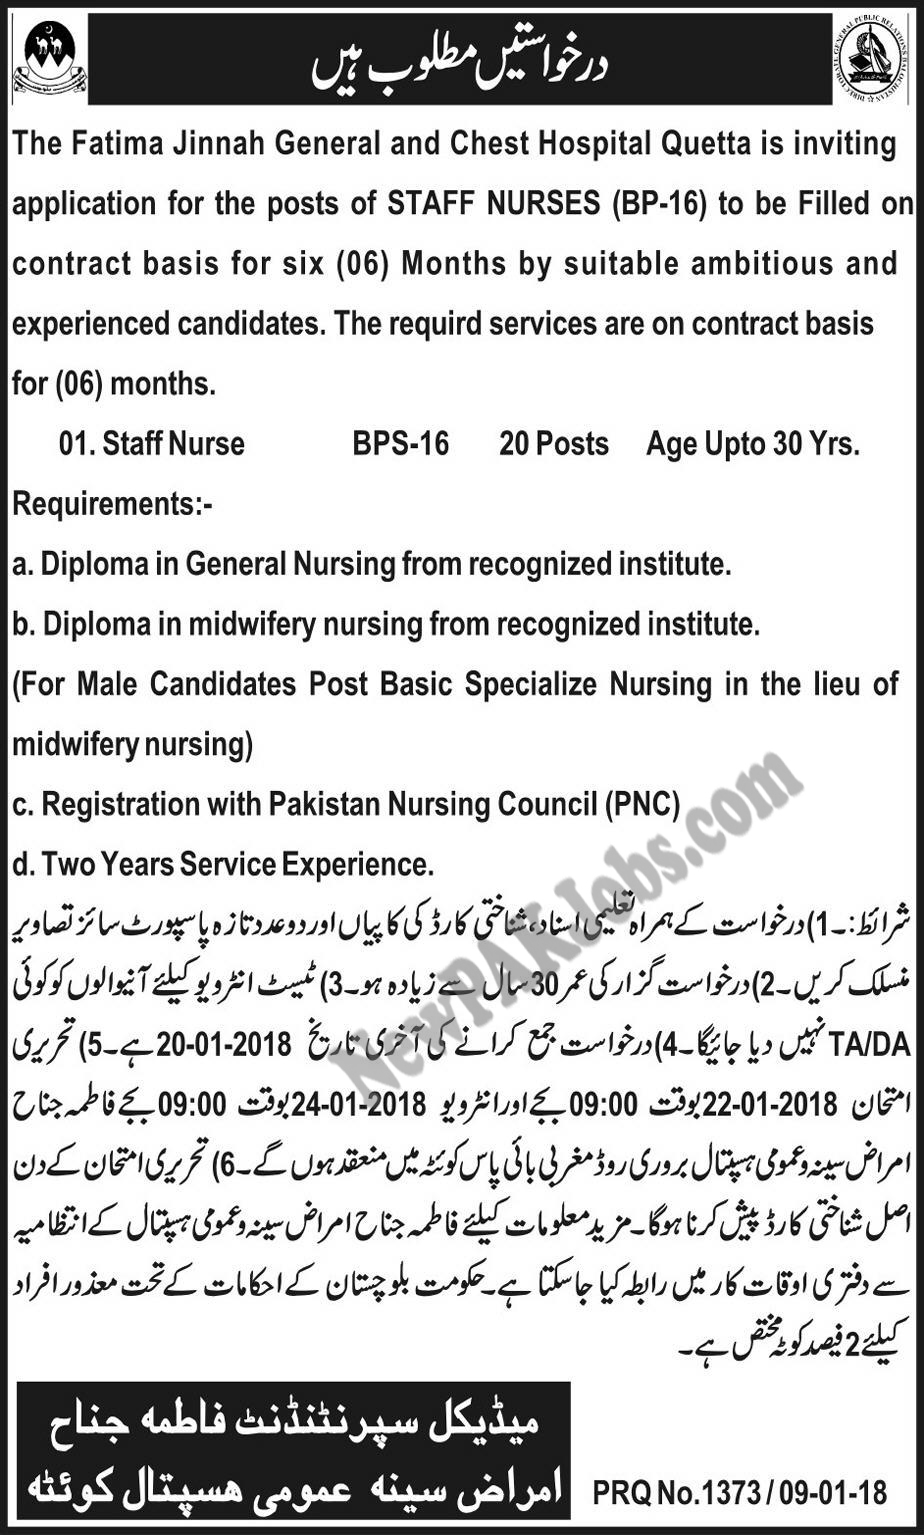 Latest Jobs in Fatima Jinnah Chest Hospital Quetta for Nurse Staff Jan 2018